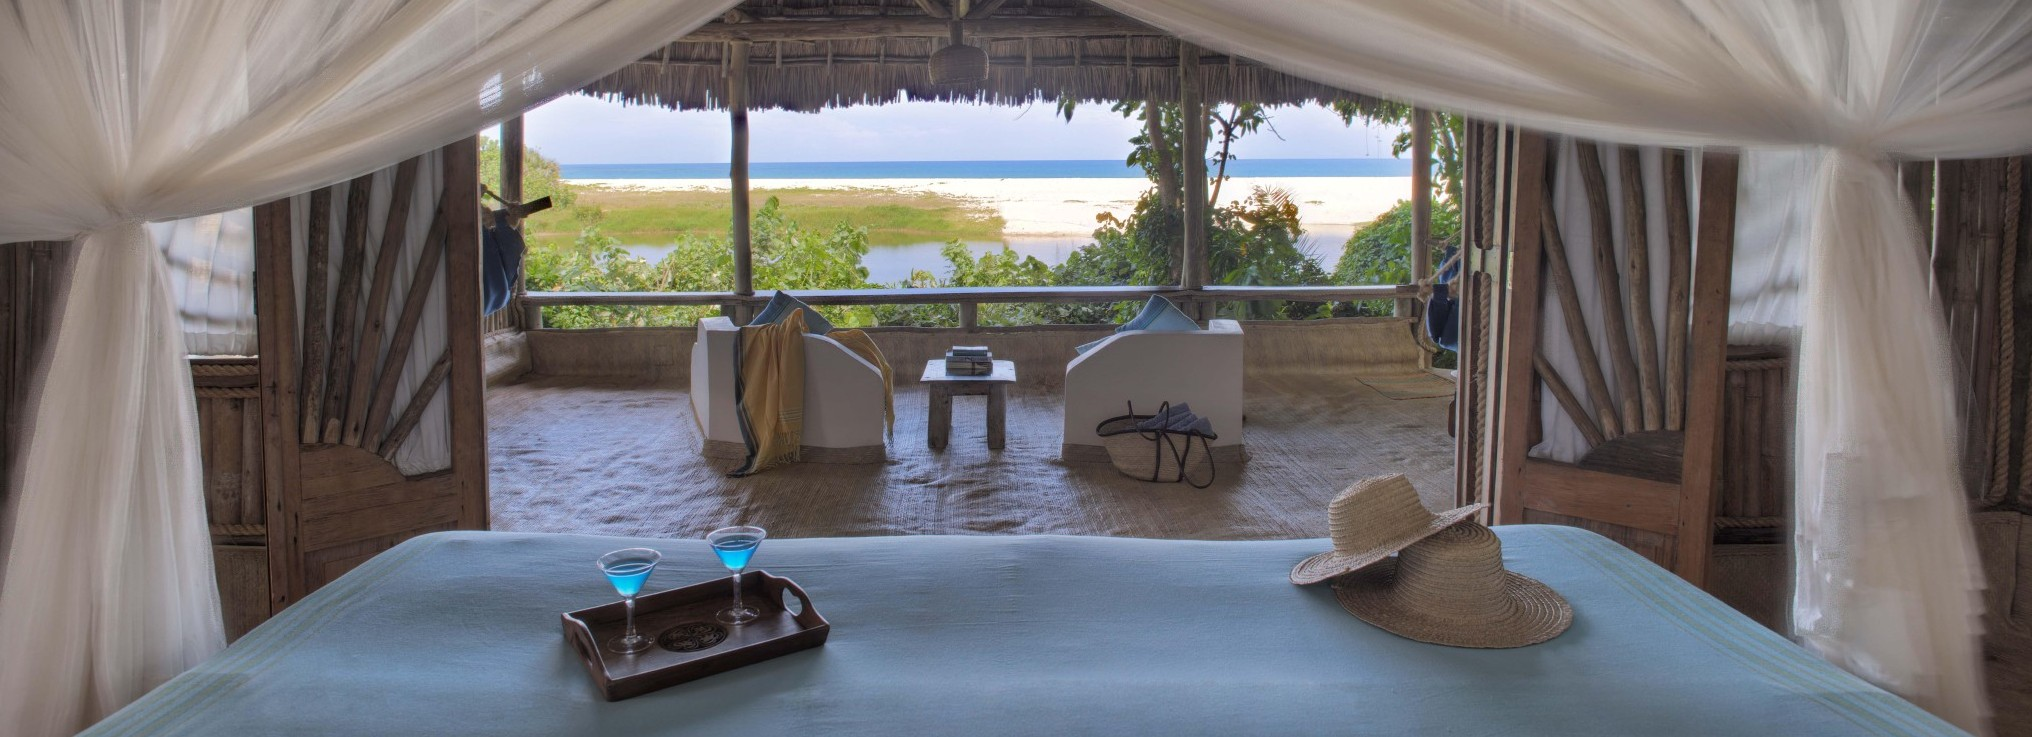 Enjoy the incredible views towards the Indian Ocean from the beach cottages at Ras Kutani